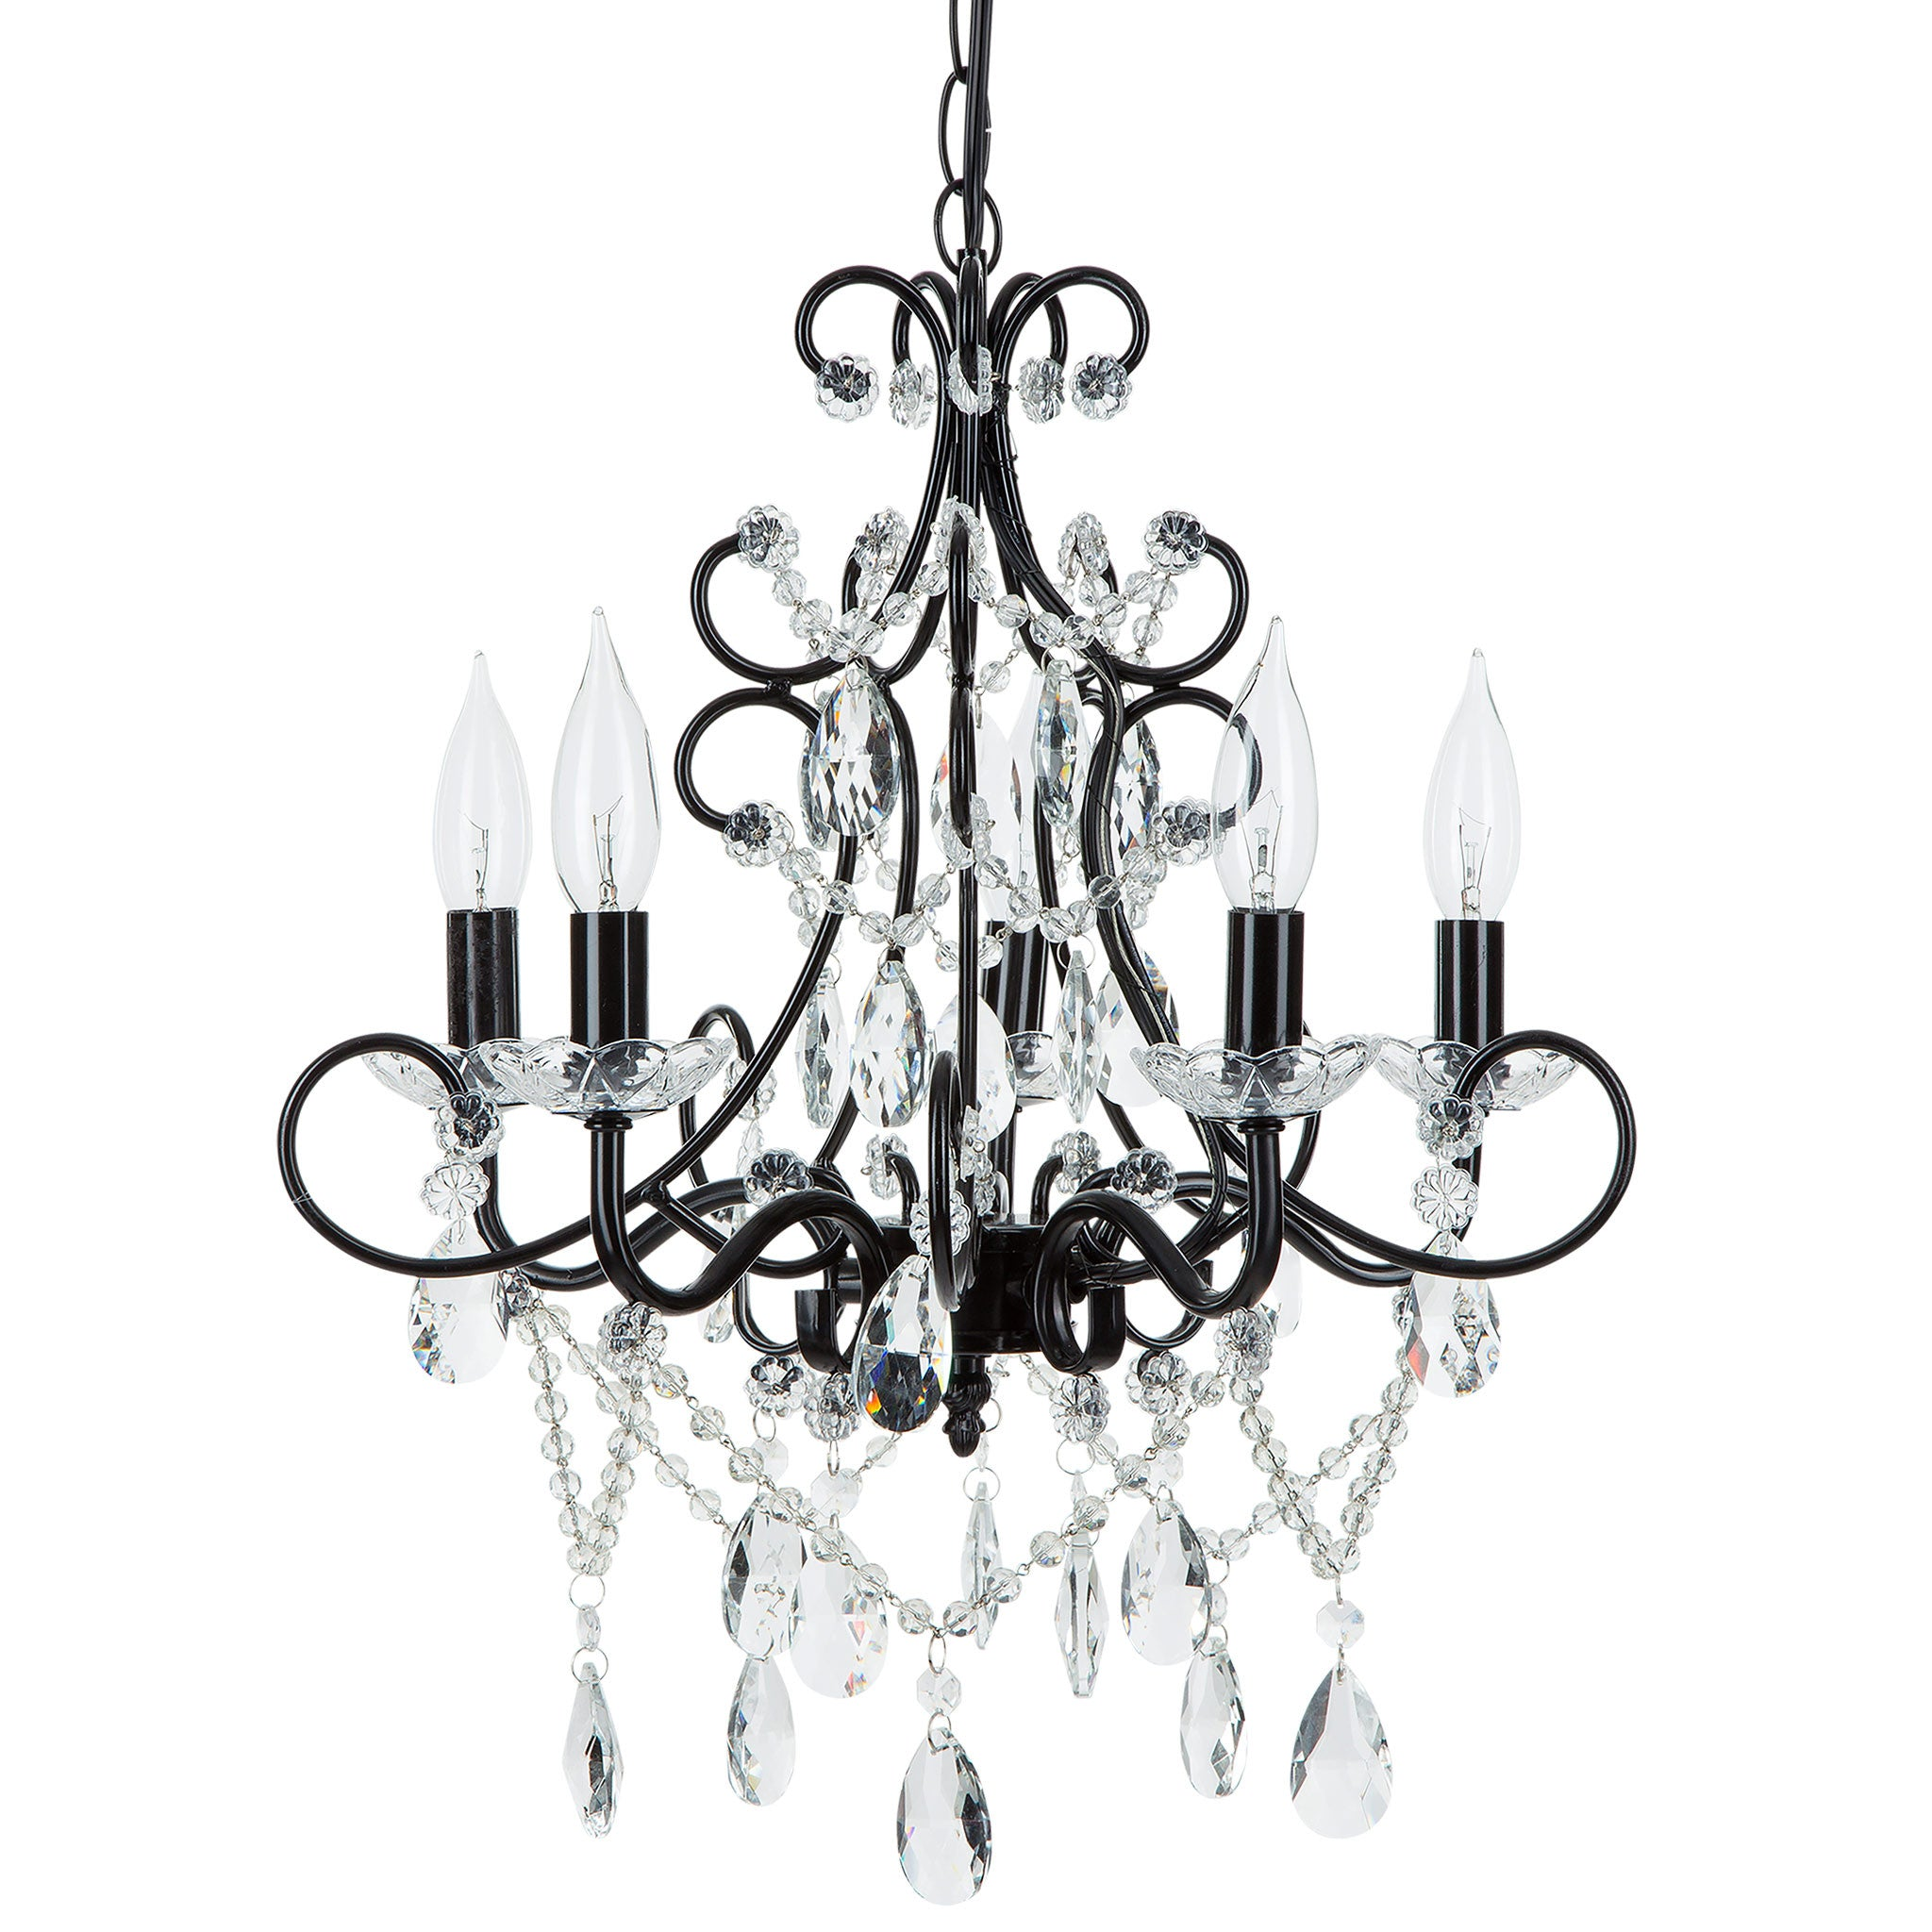 Amalfi Decor 5 Light Classic Crystal Plug-In Chandelier (Black) | Wrought Iron Frame with Glass Crystals